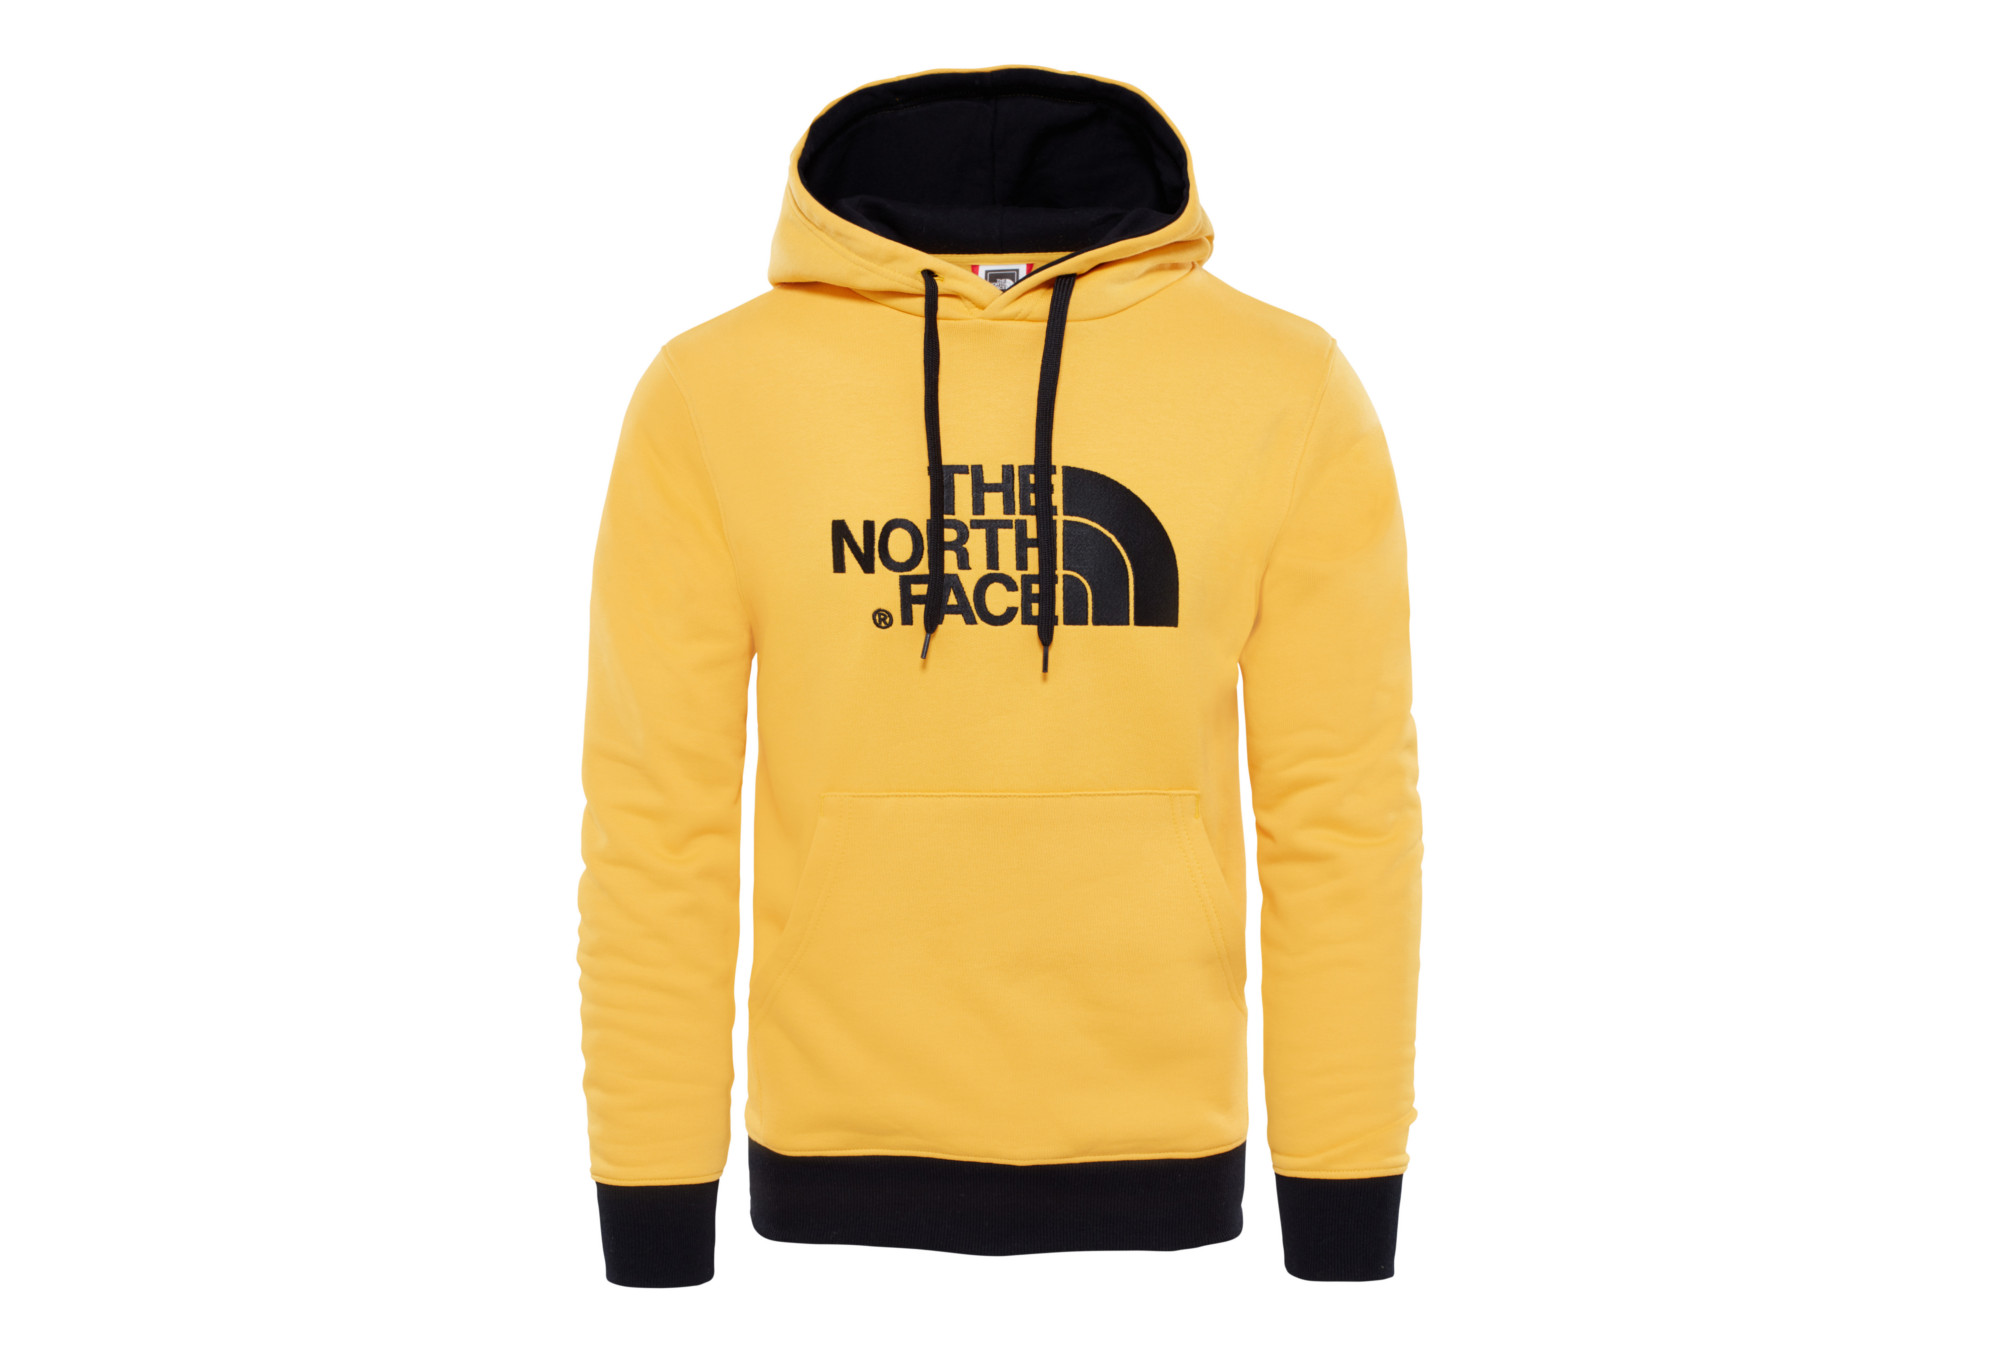 grossiste d42a4 2be1a czech black and yellow north face hoodie bbc18 f3fe9